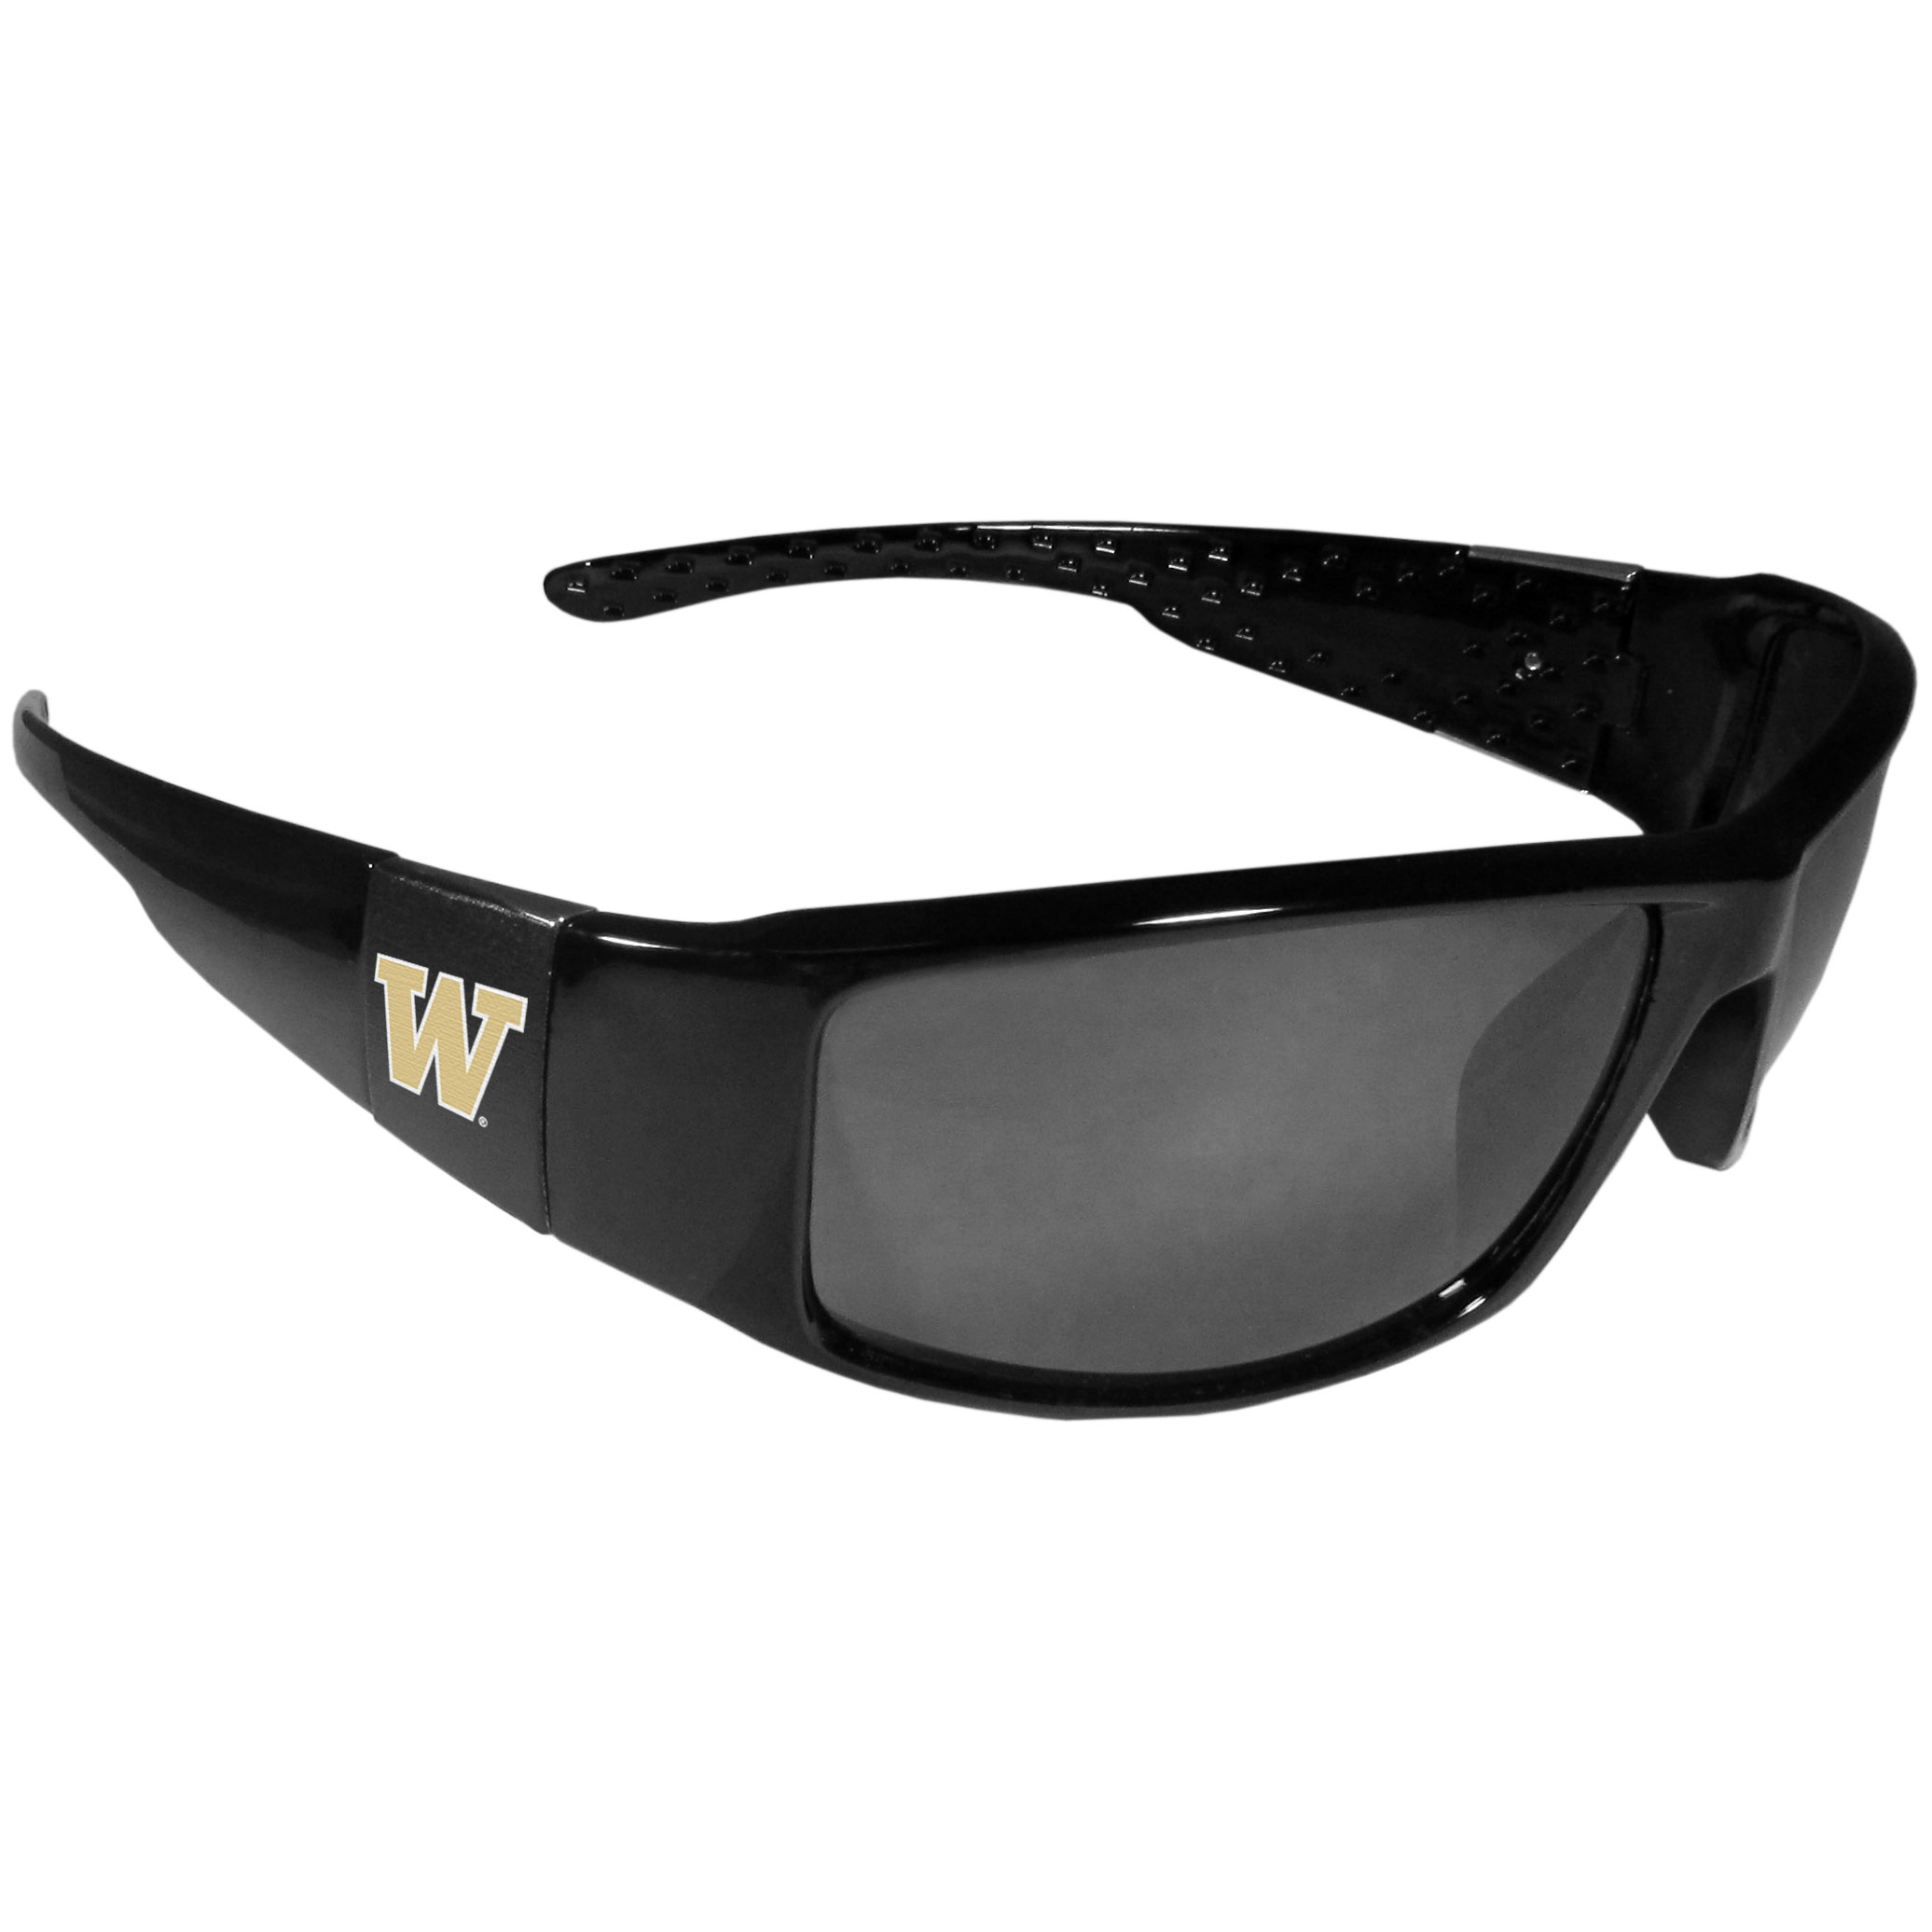 Washington Huskies Black Wrap Sunglasses - These designer inspired frames have a sleek look in all black with  Washington Huskies shields on each arm with a printed logo. The shades are perfect for any outdoor activity like; golfing, driving, hiking, fishing or cheering on the team at a tailgating event or at a home game day BBQ with a lens rating of 100% UVA/UVB for maximum UV protection. The high-quality frames are as durable as they are fashionable and with their classic look they are the perfect fan accessory that can be worn everyday for every occasion.